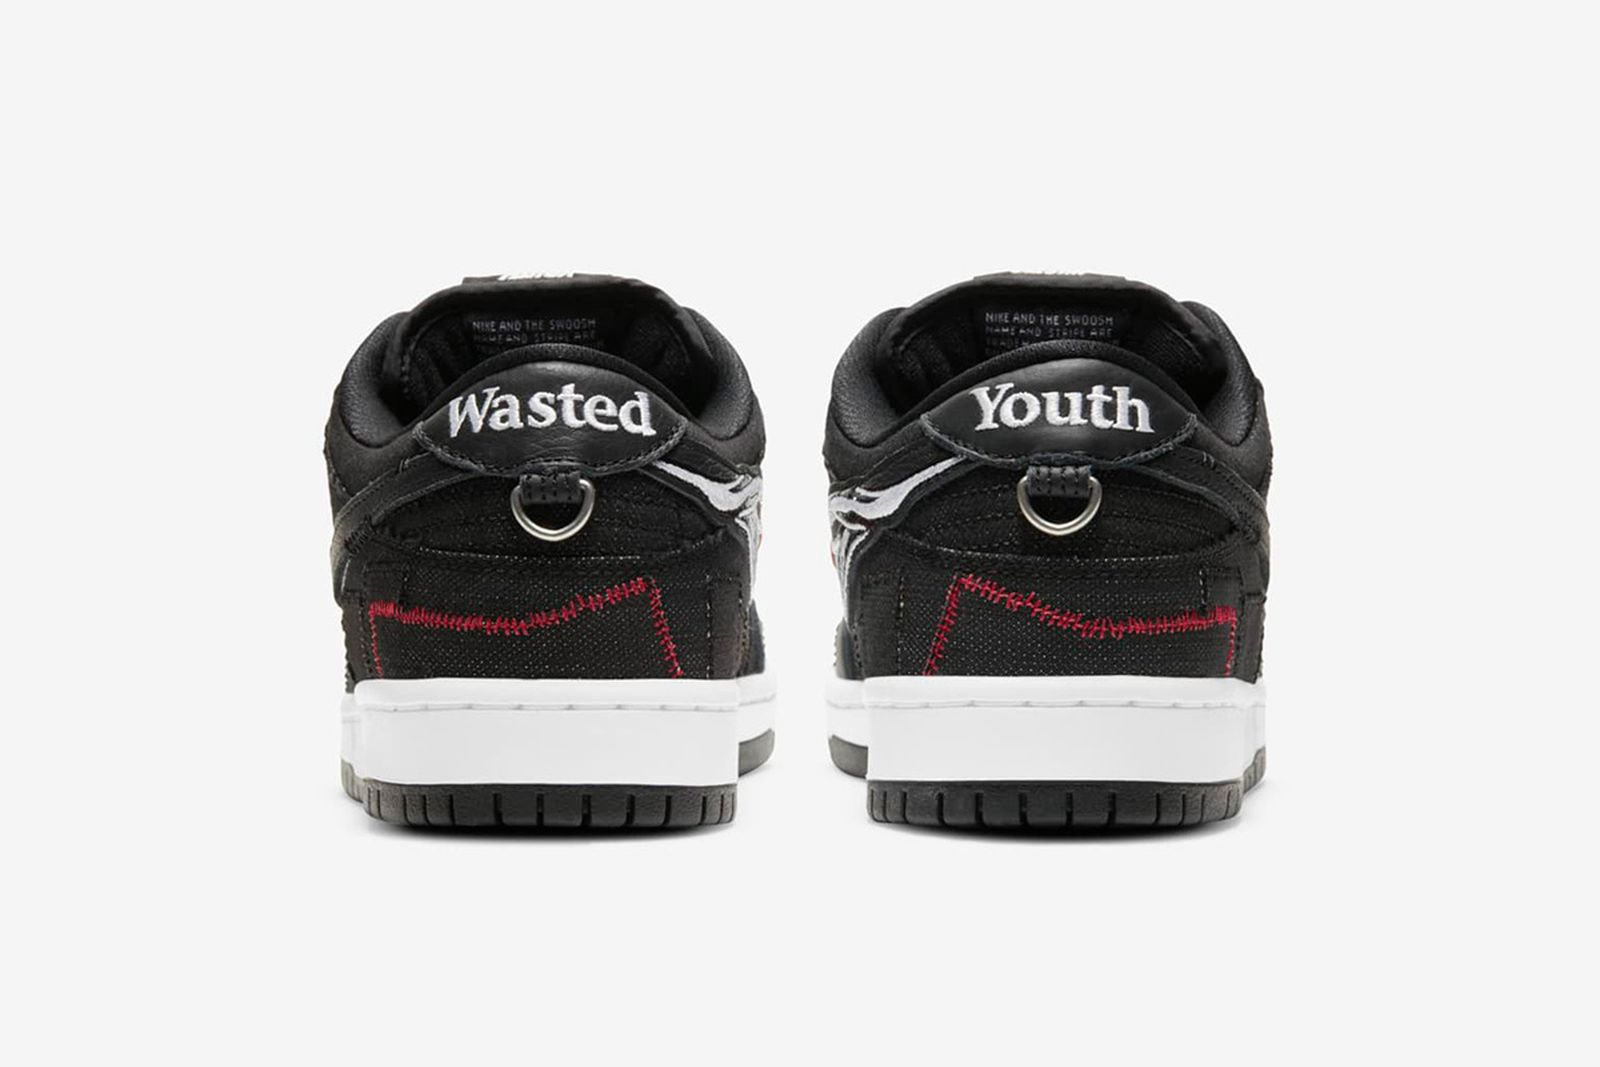 verdy-nike-sb-dunk-low-wasted-youth-release-date-price-06